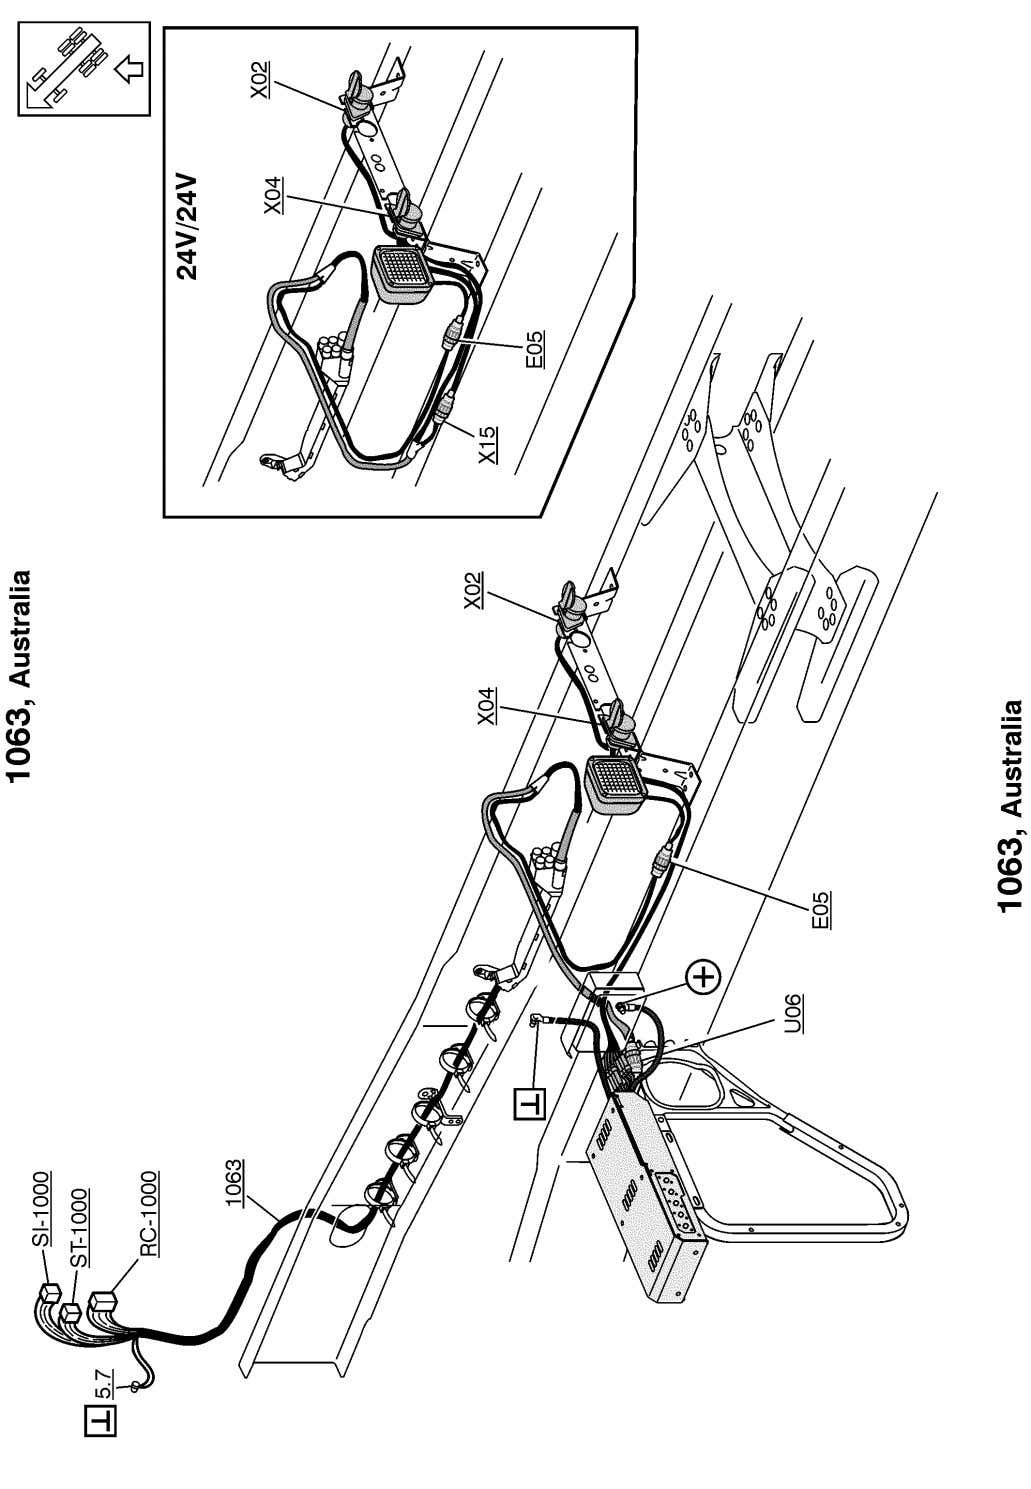 T3020631 Wiring diagram Page 175 (298)